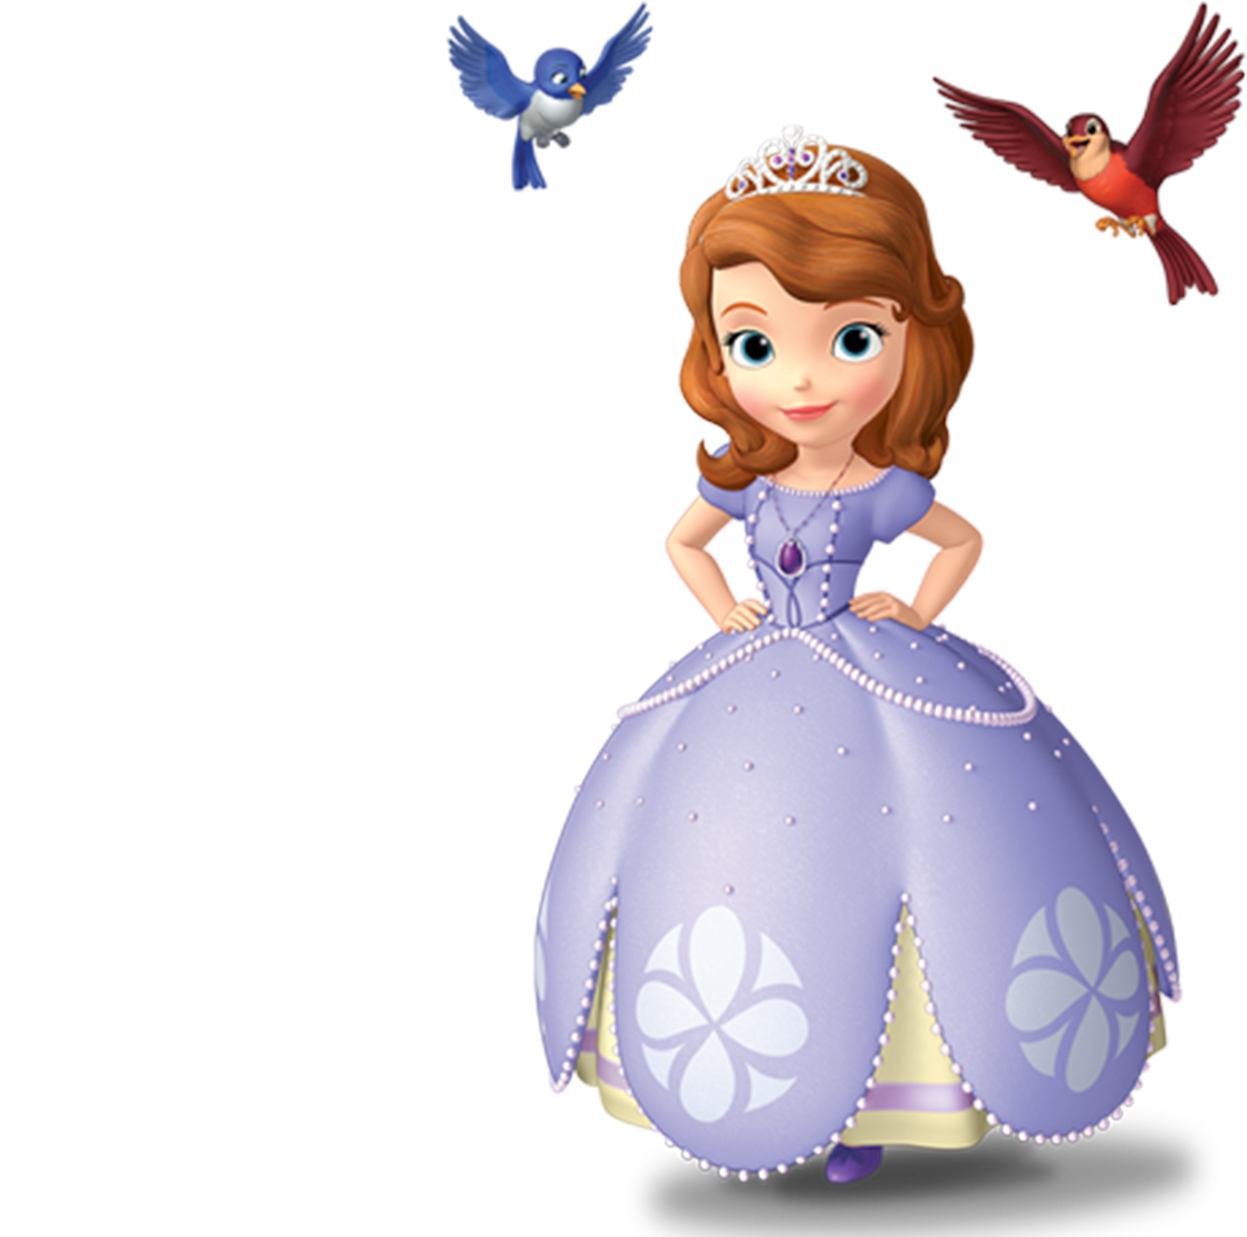 Sofia The First Free Party Printables And Images  Oh My. Adp Pay Stub Template. Ideas For Proposing To Your Bridesmaids. Security Proposal Templates. Skills On A Resume Examples. Market Researcher Cover Letter. Samples Of Qualifications For A Resume Template. Land Surveyor Invoice Template 798588. School Calendar Template 2015 2018 Template